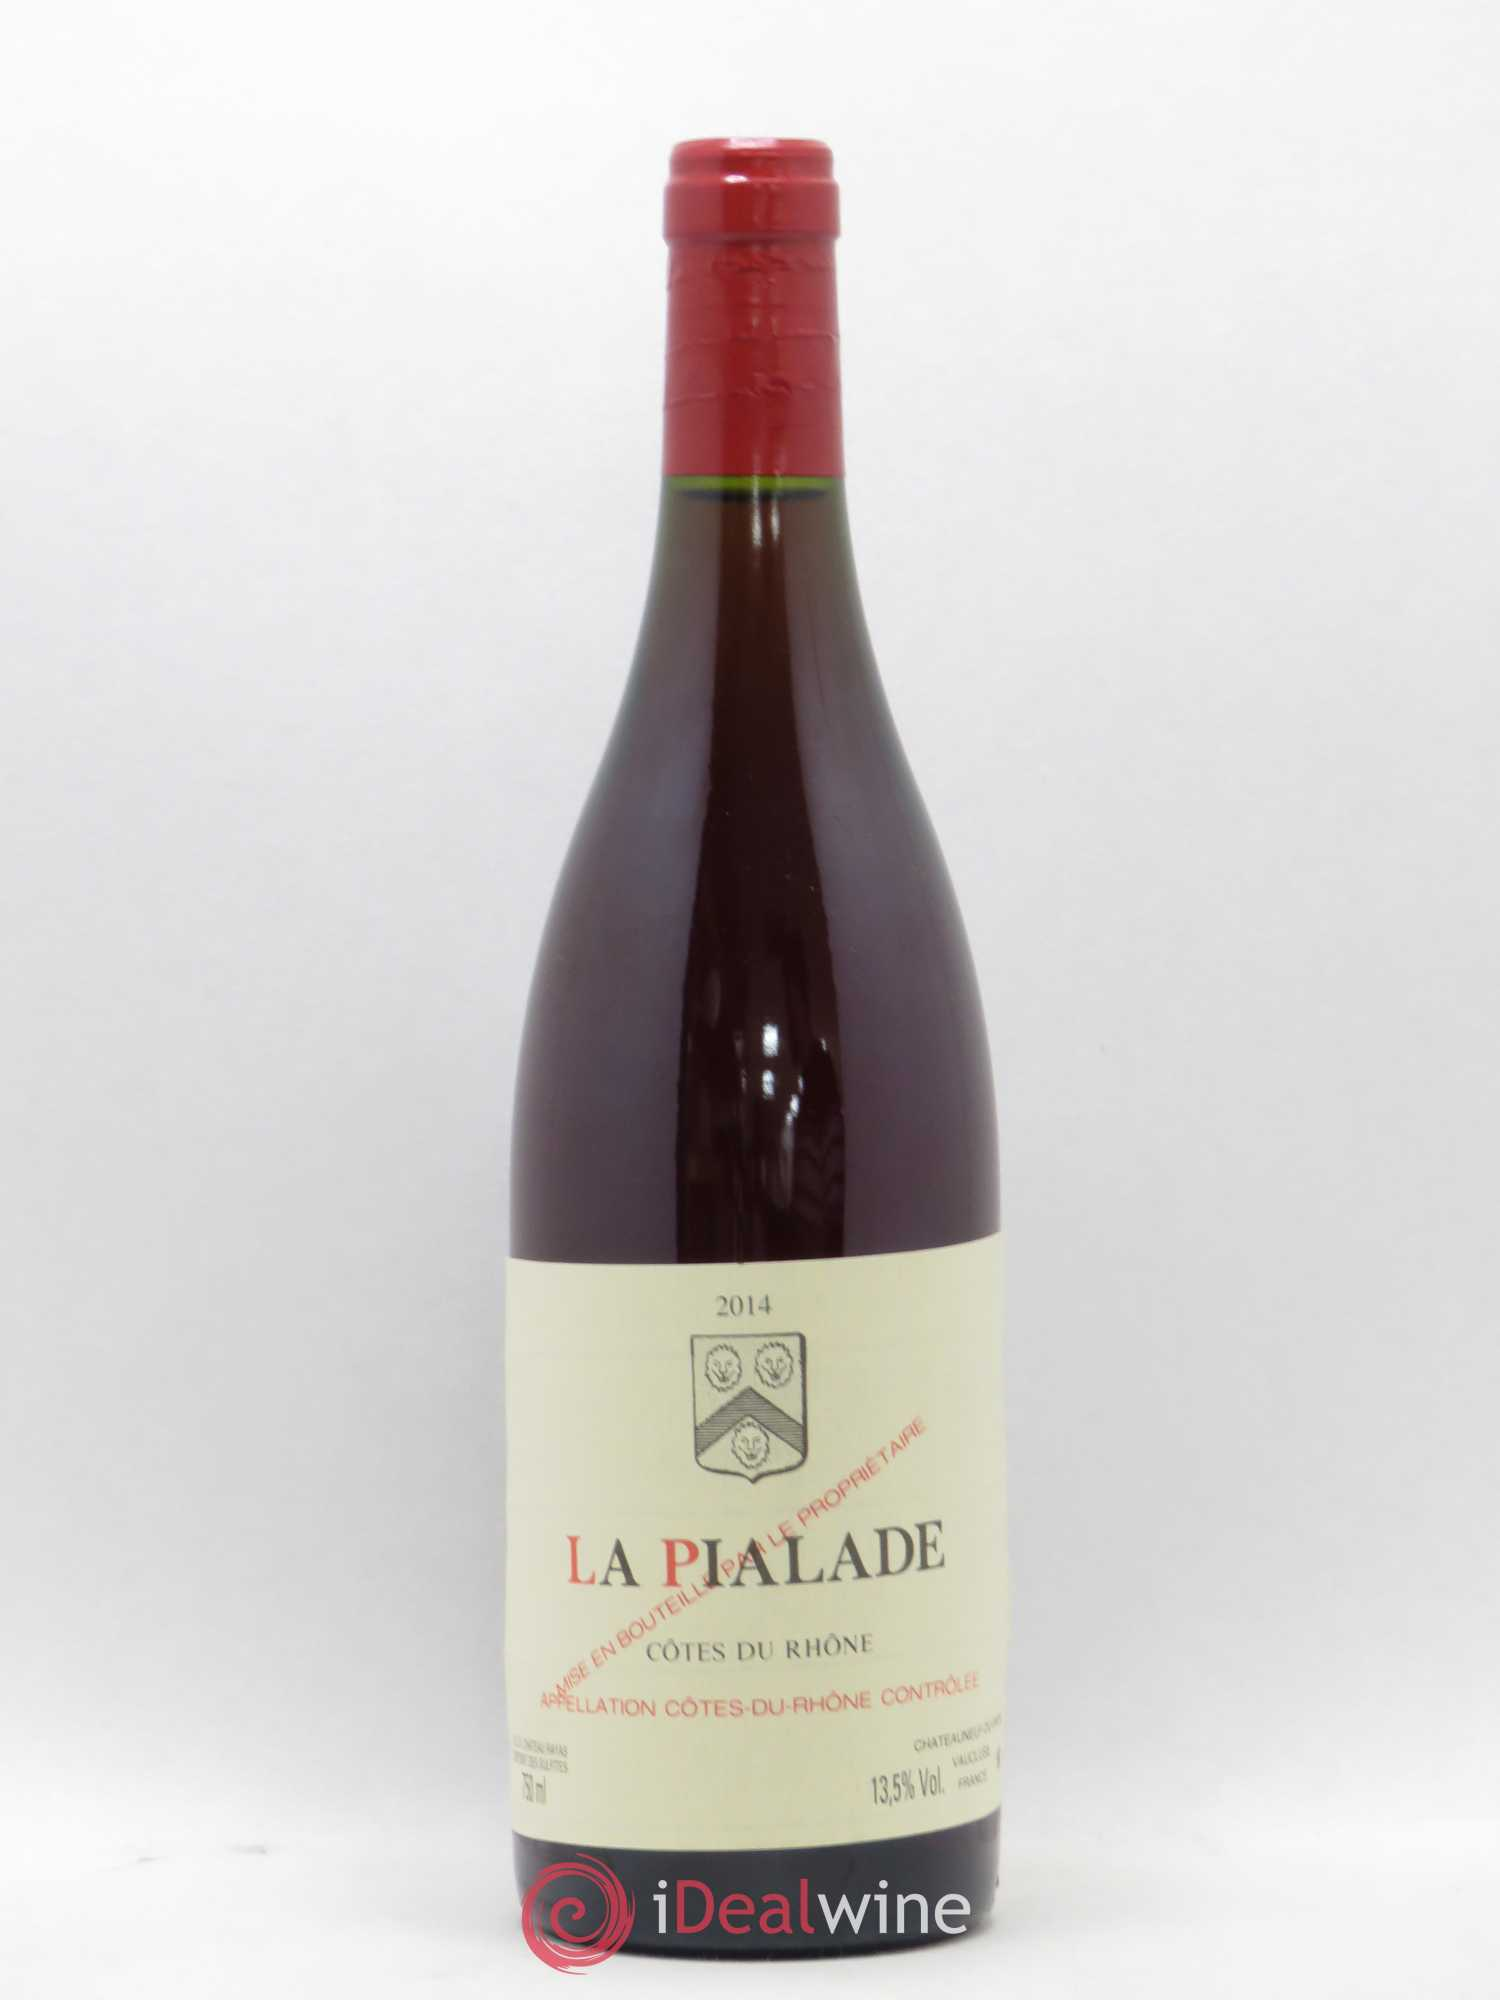 Côtes du Rhône La Pialade Emmanuel Reynaud  2014 - Lot of 1 Bottle